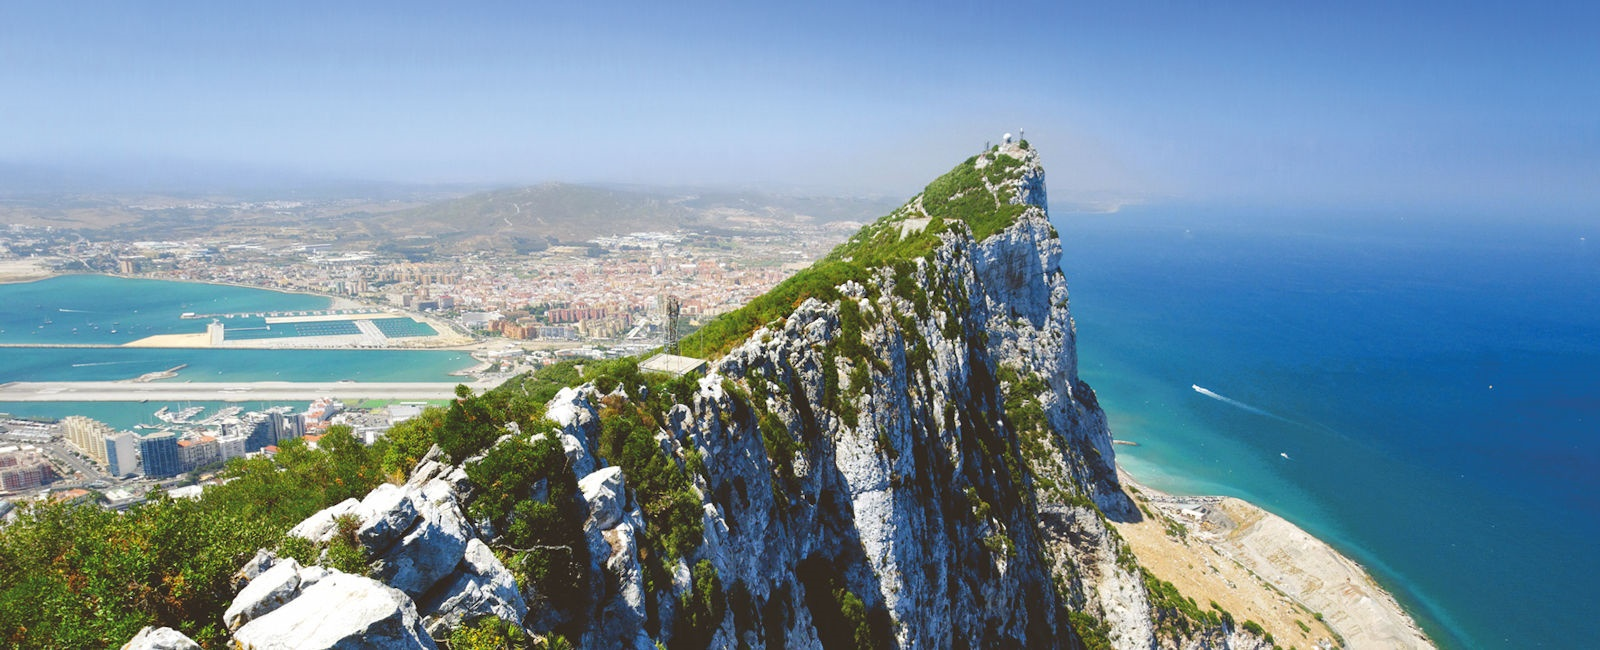 luxury gibraltar holidays